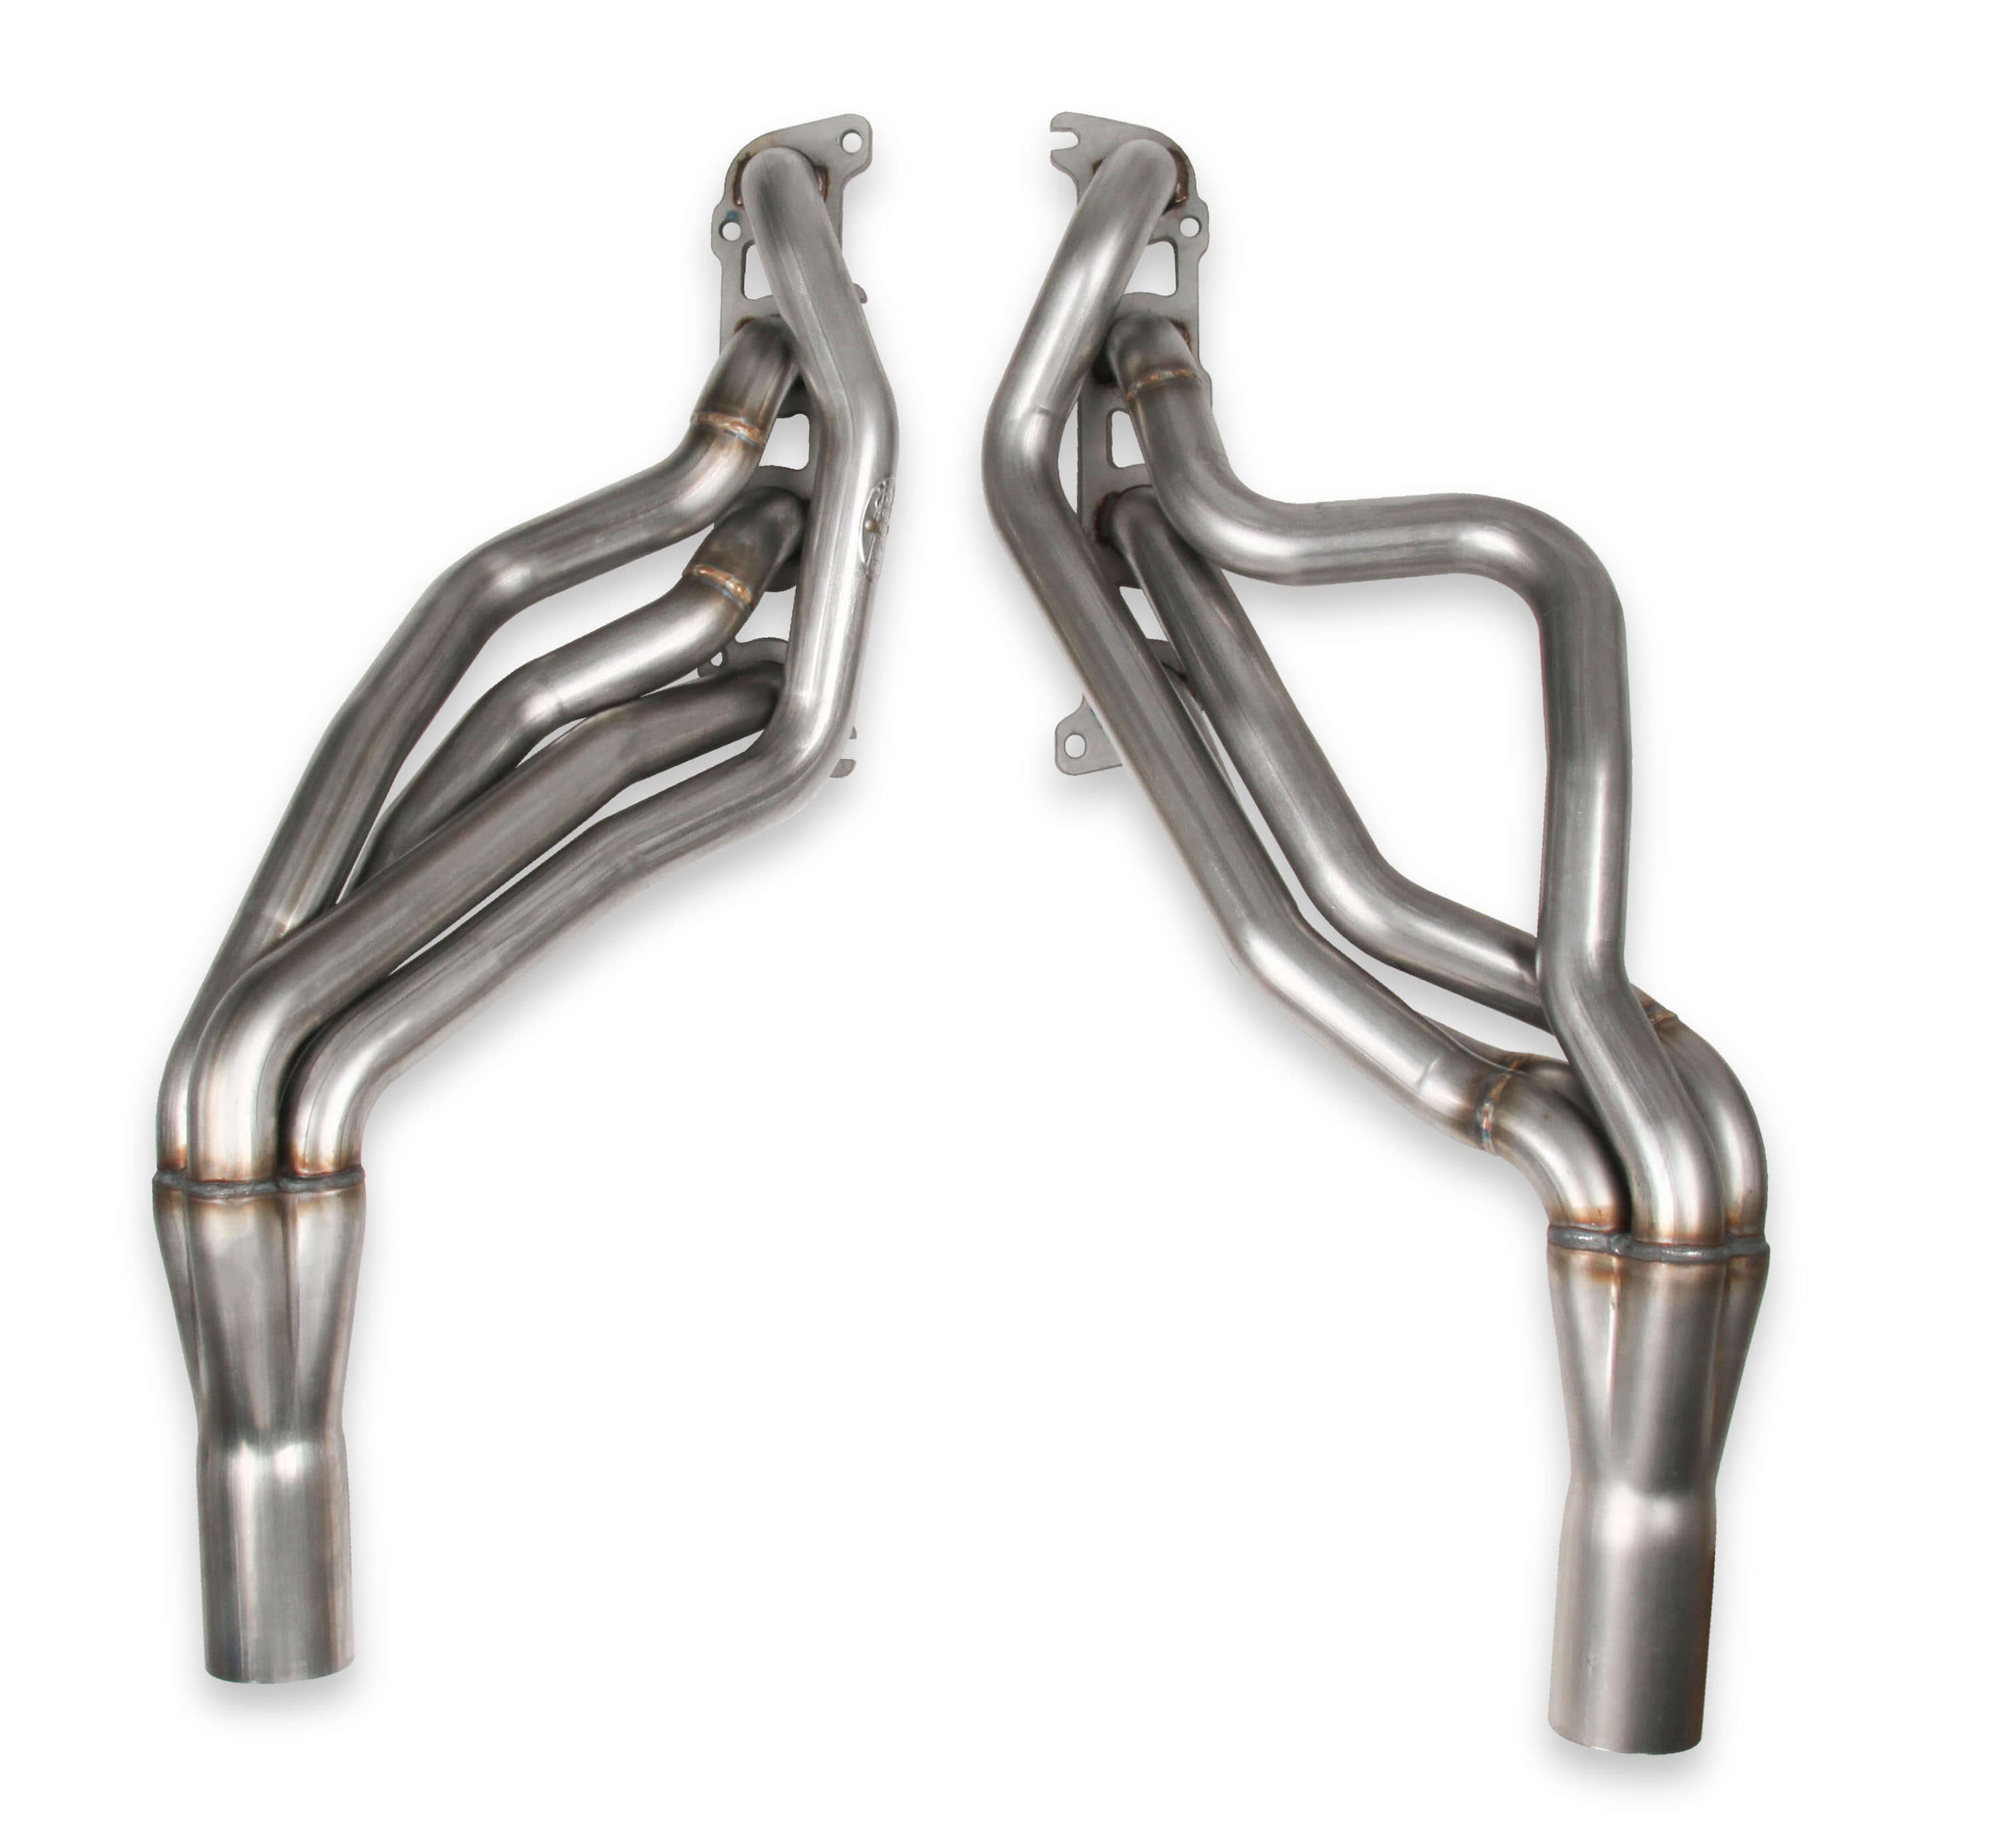 "1996-2004 Ford Mustang Coyote Swap Hooker Headers 304SS 1 3/4"" Blackheart Long Tube Headers"